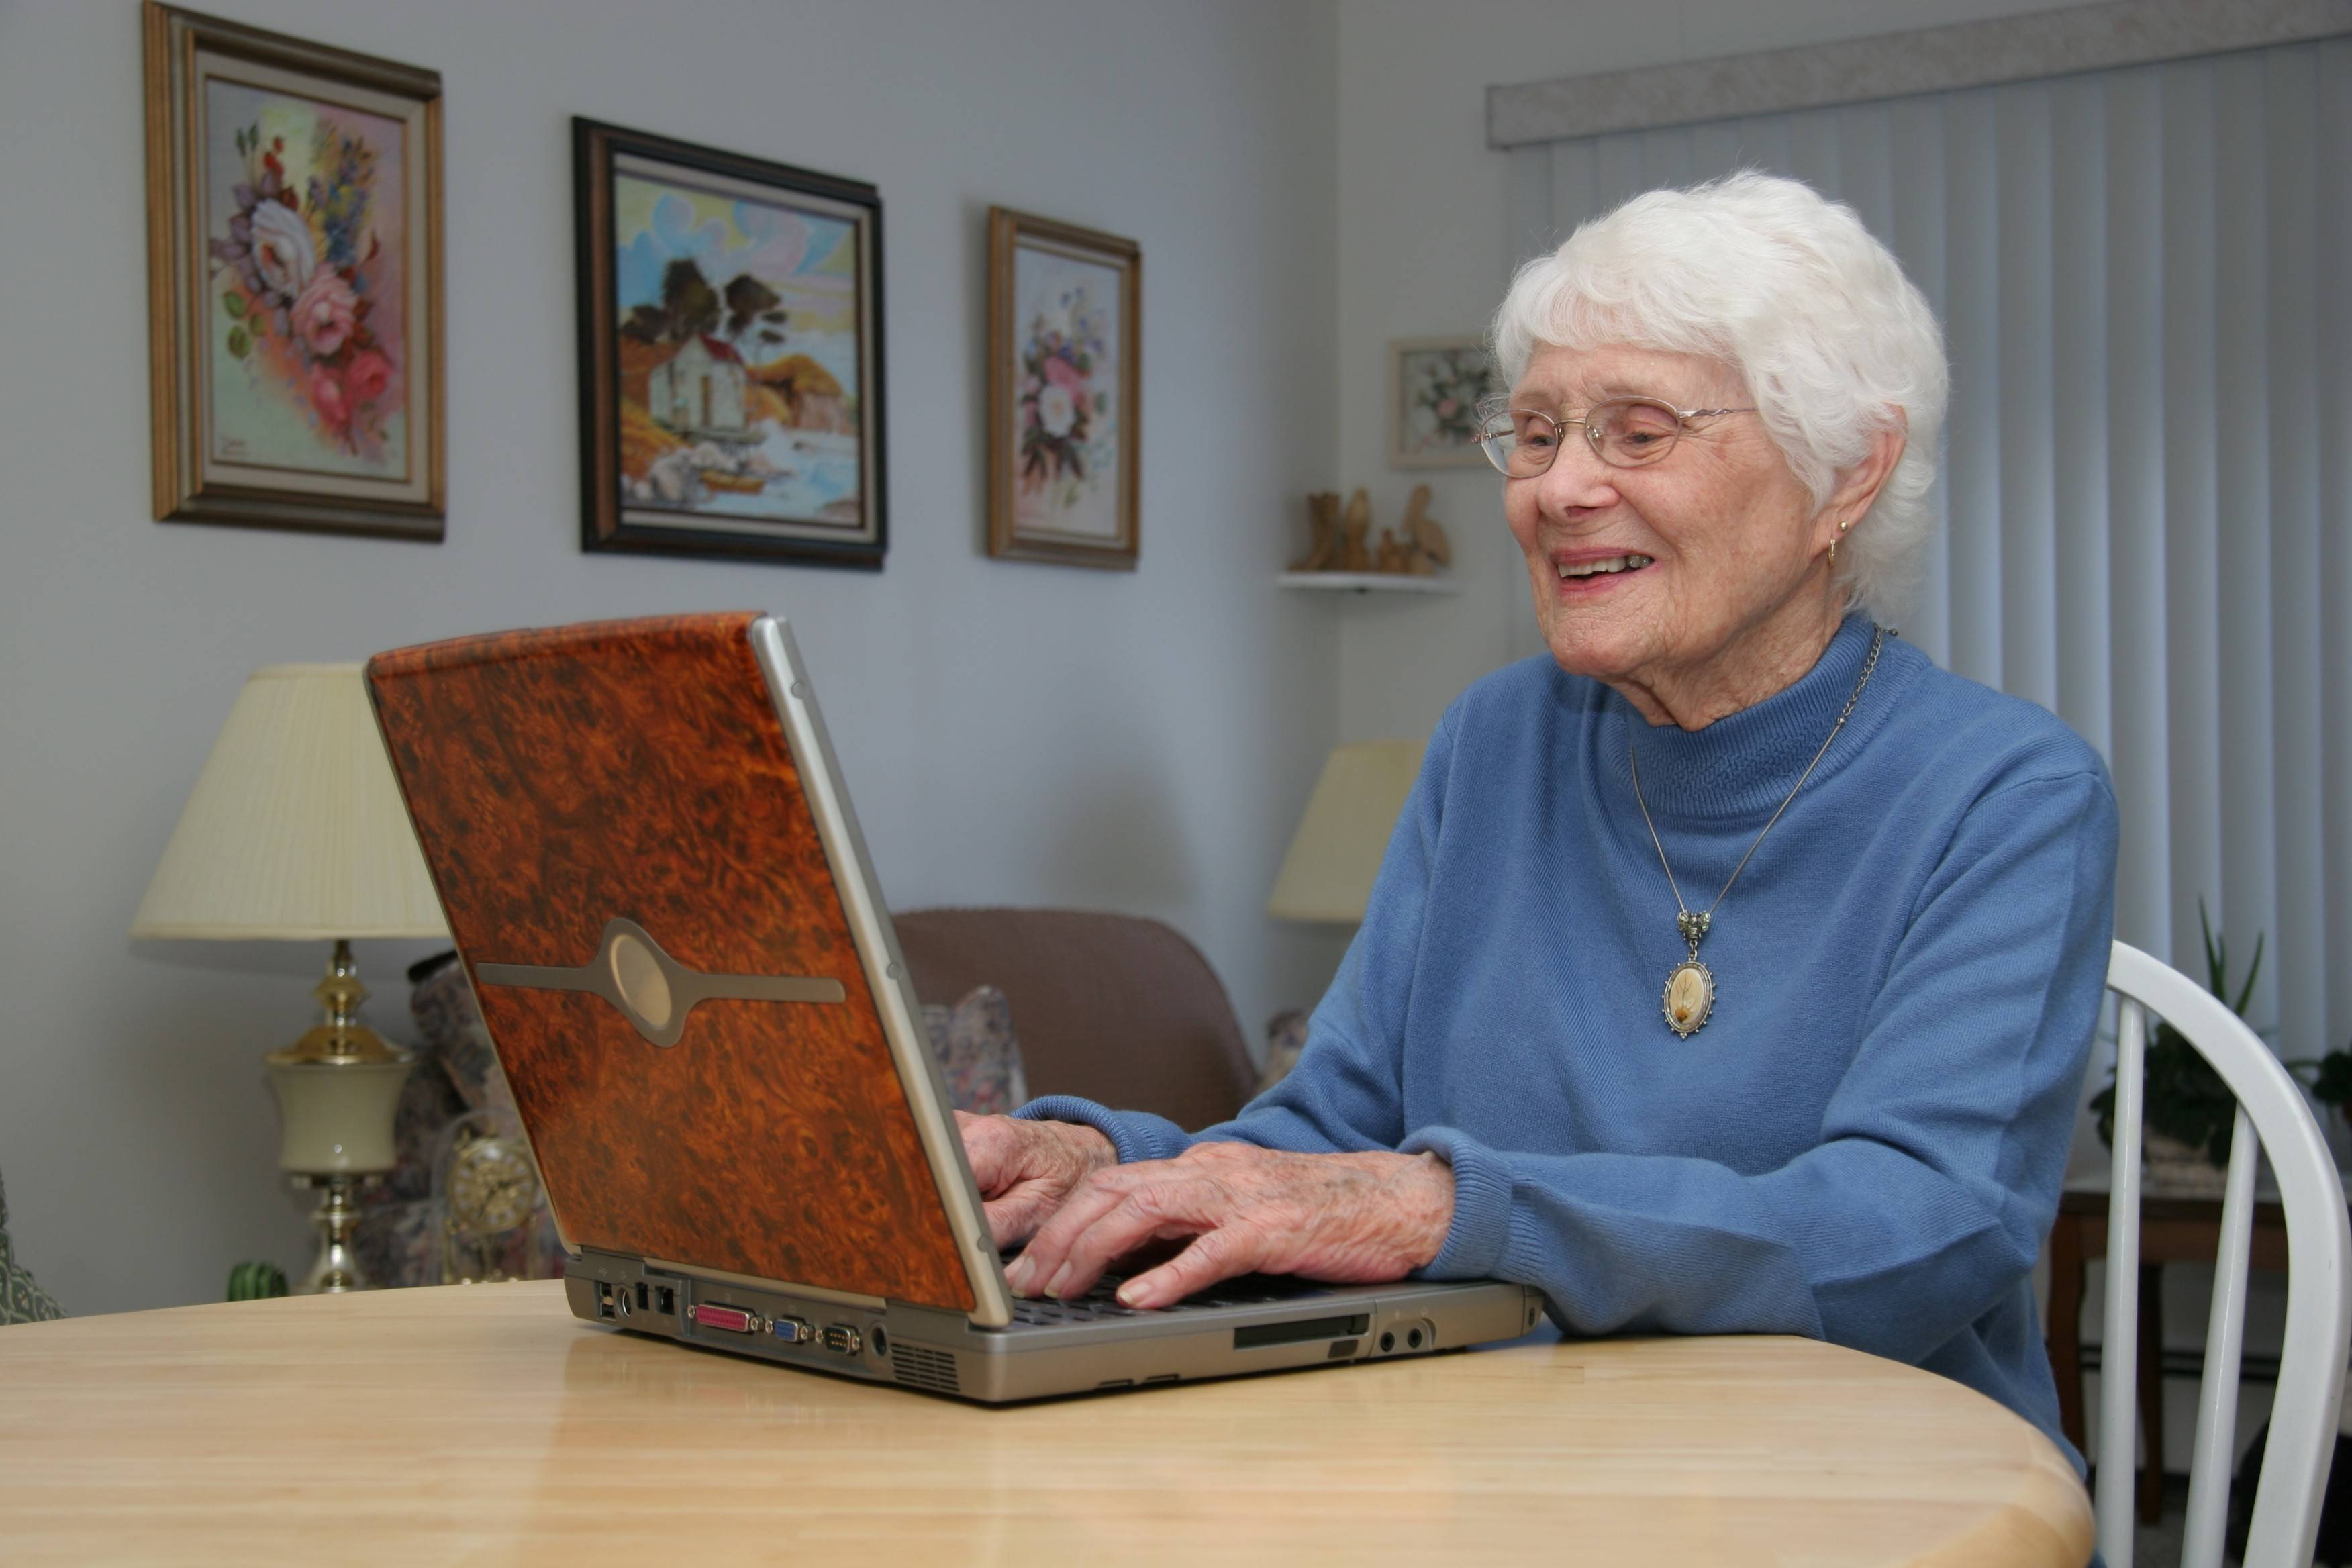 Modern technology makes it easier for adult children to stay connected with aging parents.